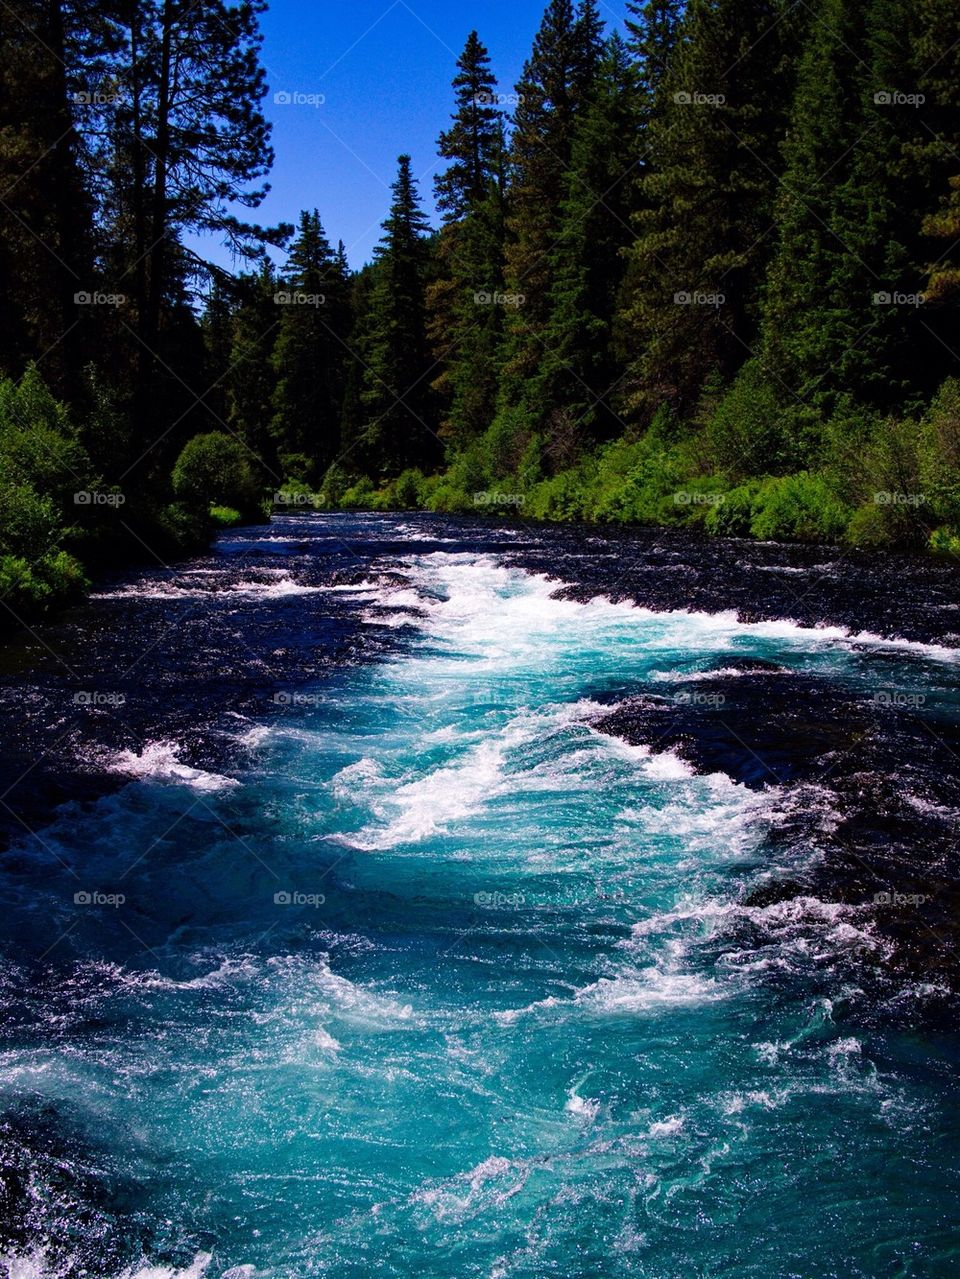 Rapids at the deep blue and turquoise waters of the Metolius River at Wizard Falls in Central Oregon on a sunny summer day.